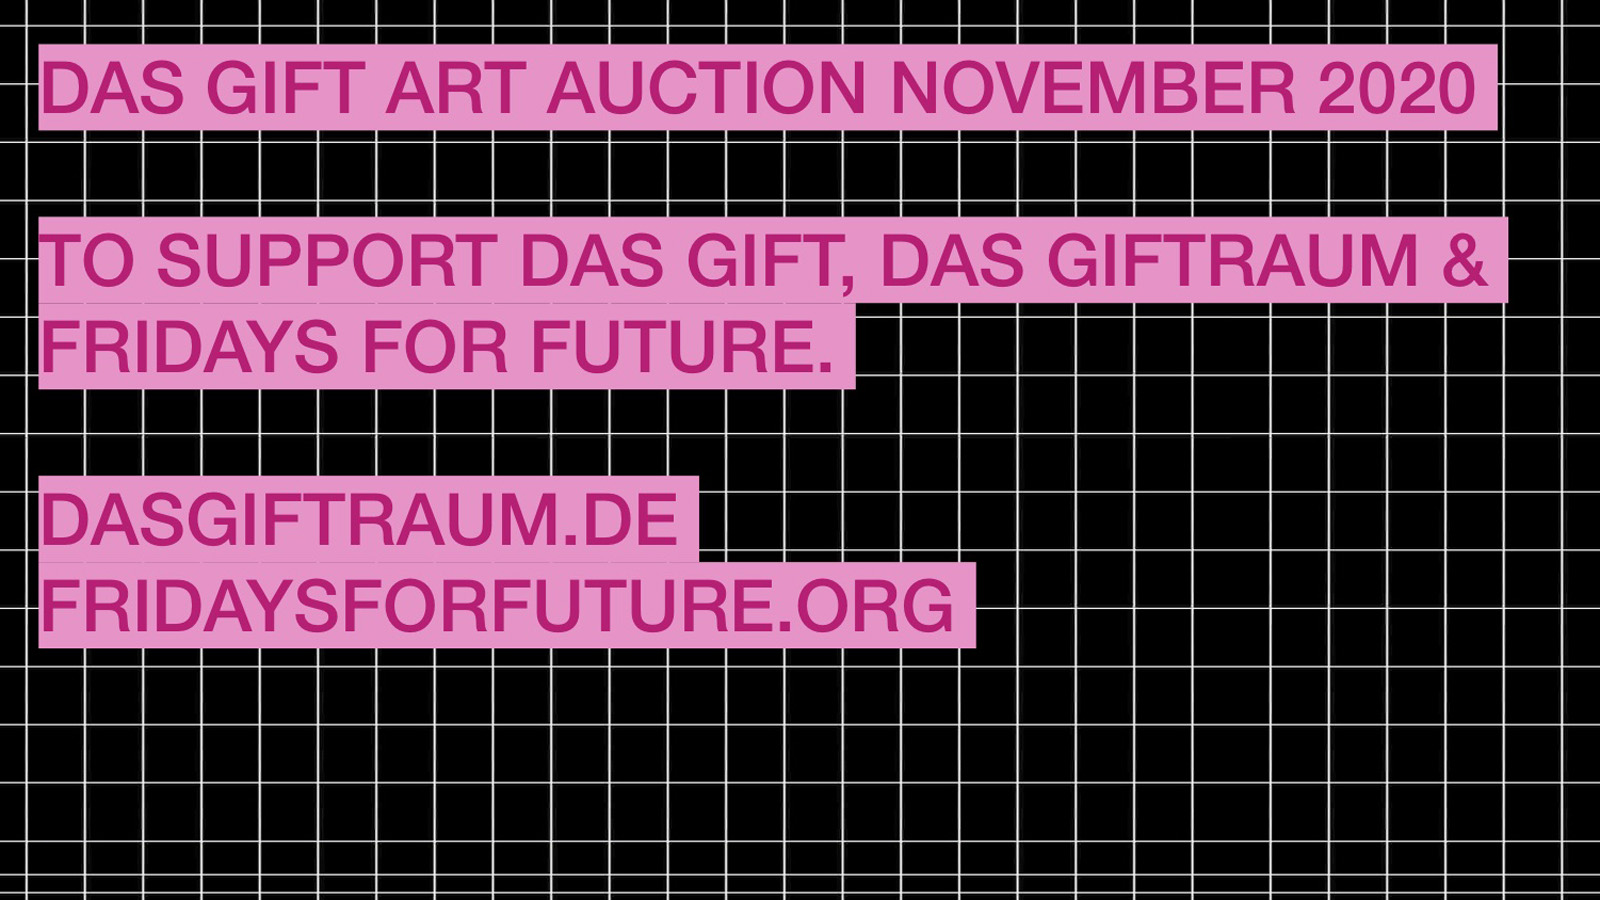 Das Giftraum | »Fridays For Future Kunstauktion«